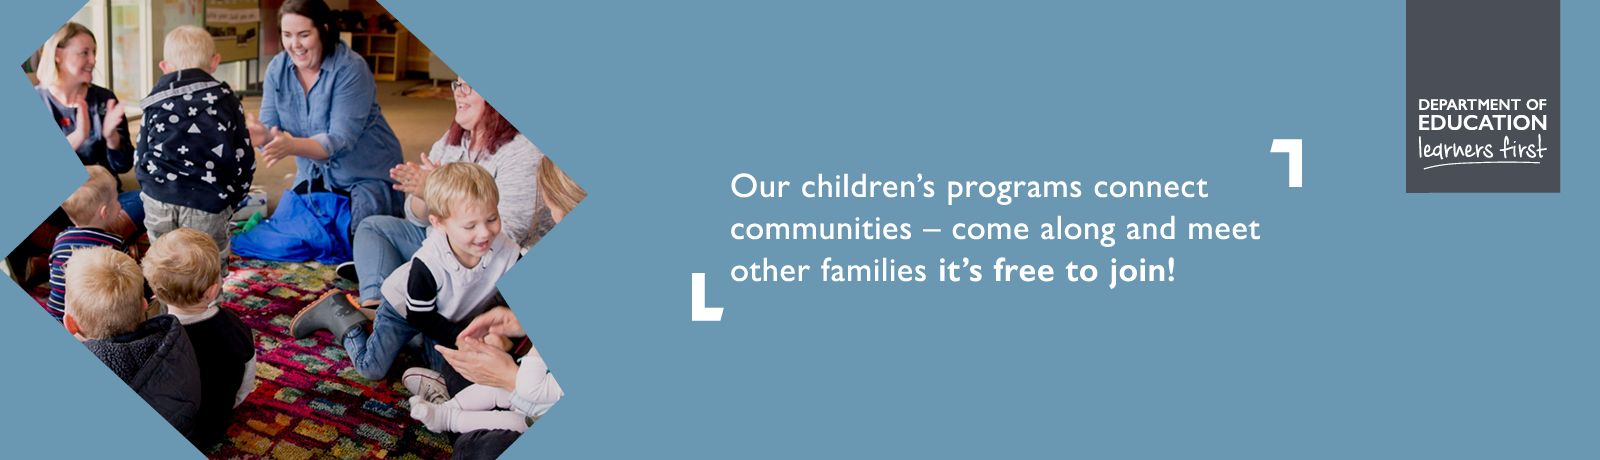 Our children's programs connect communities - come along and meet other families, it's free to join!